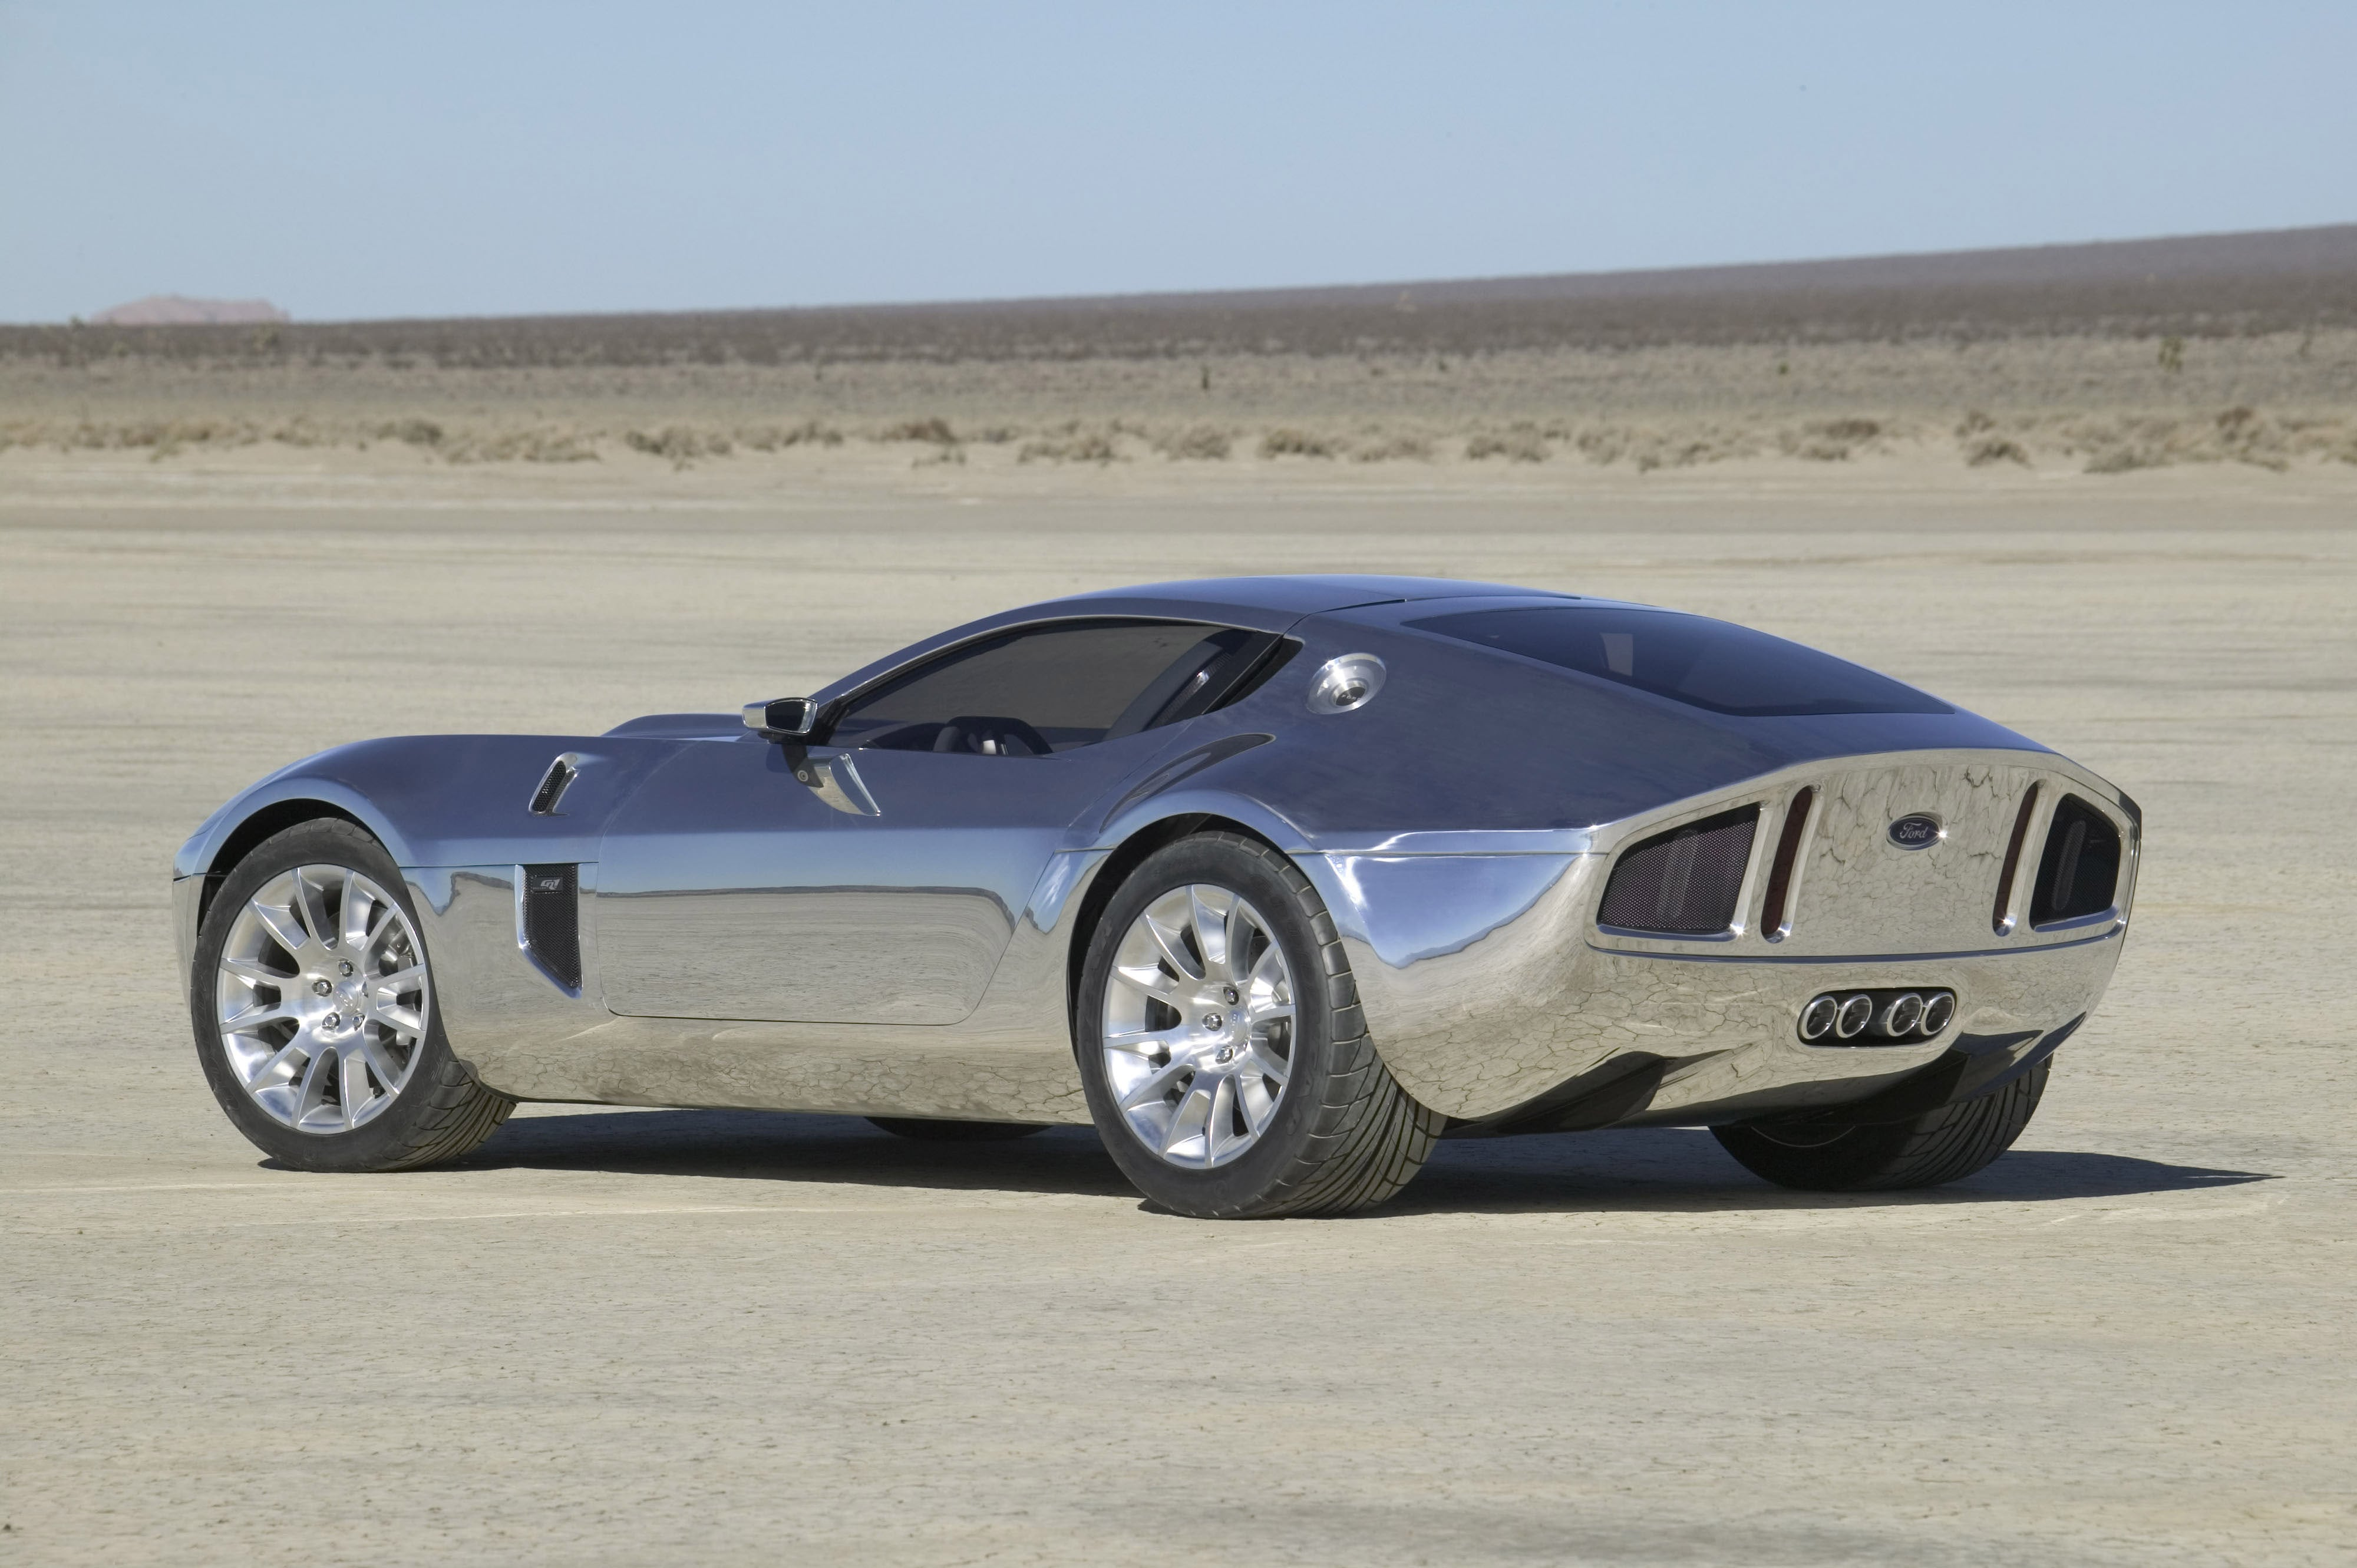 Ford Shelby GR1 Concept Widescreen